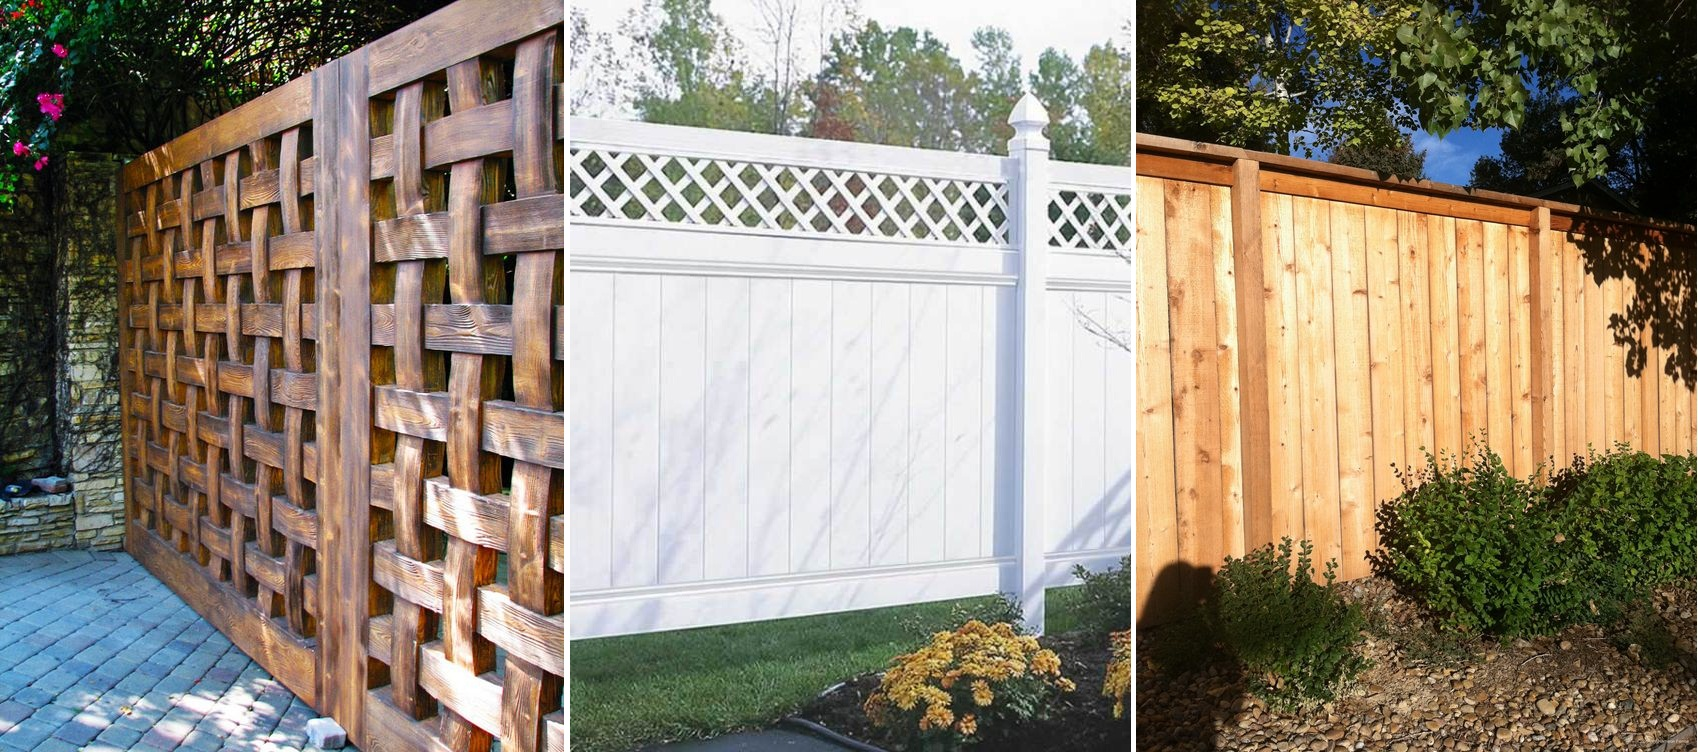 Foolproof Designs and Privacy Fence Types For Your Updated Home photo - 4